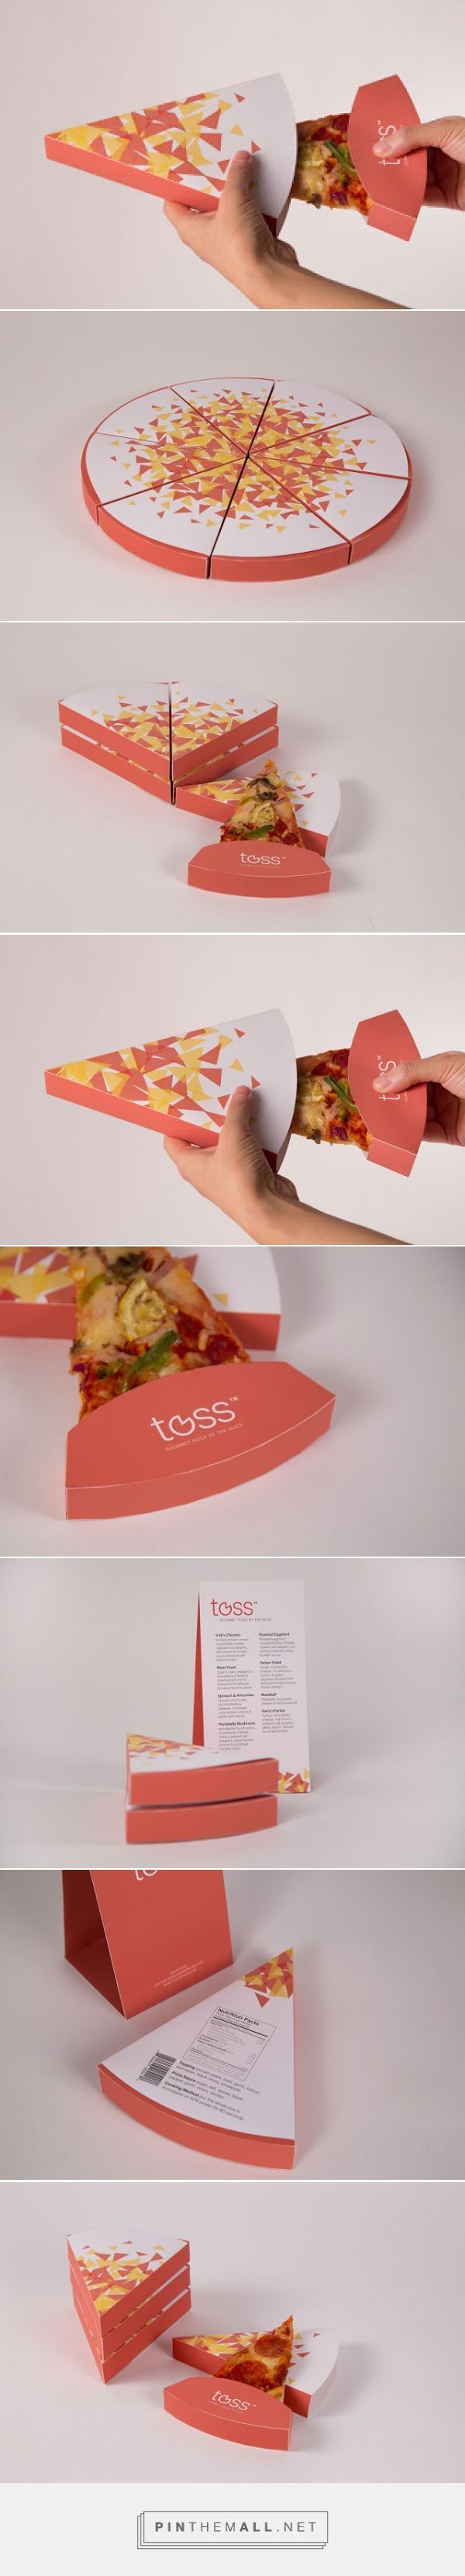 cool Toss - Gourmet Pizza By The Slice (Student Project)         on          Packaging of the World - Creative Package Design Gallery... - a grouped images picture